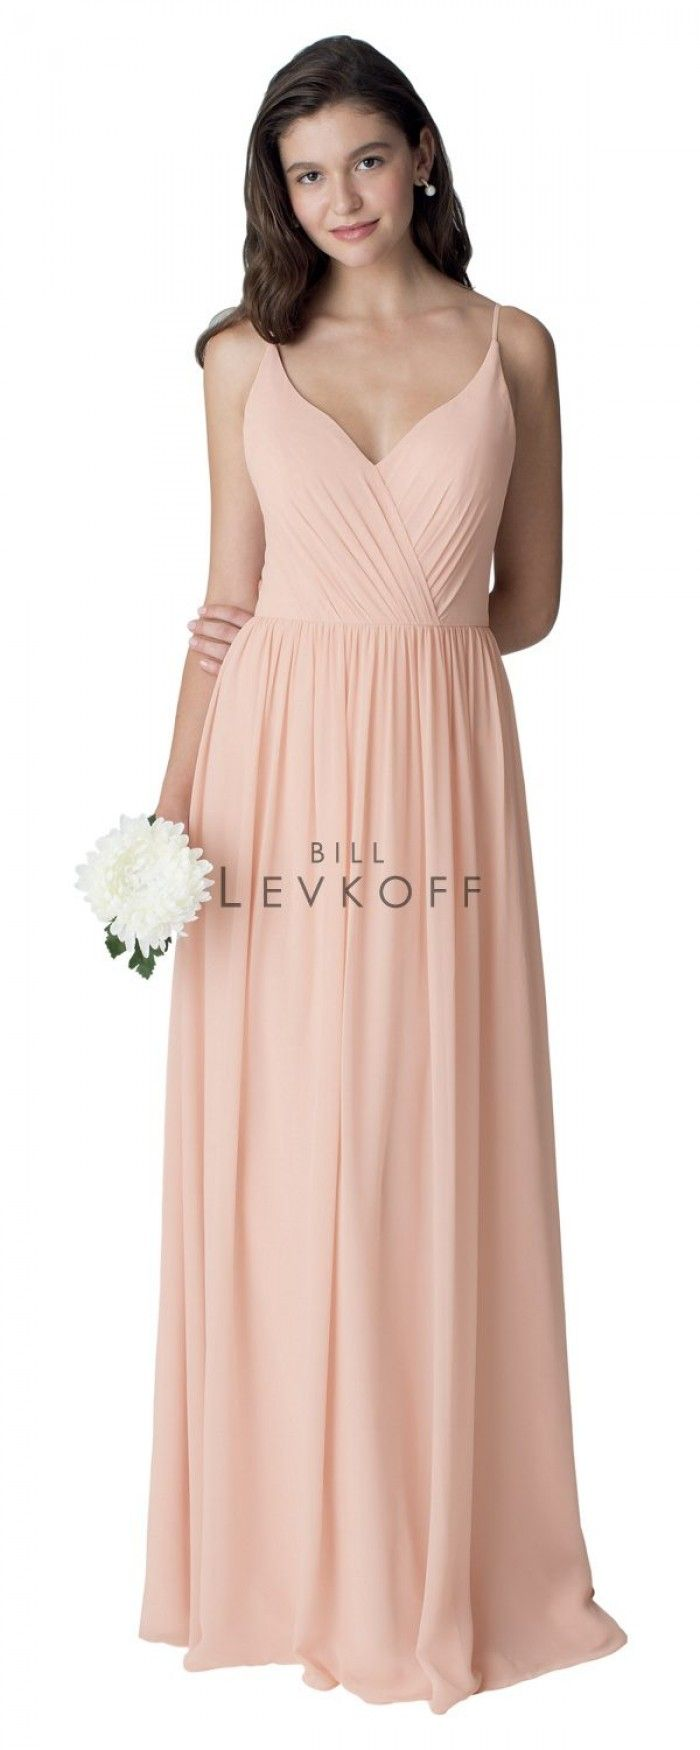 formal dresses for weddings 10 best bill levkoff bridesmaid dresses images on 4319